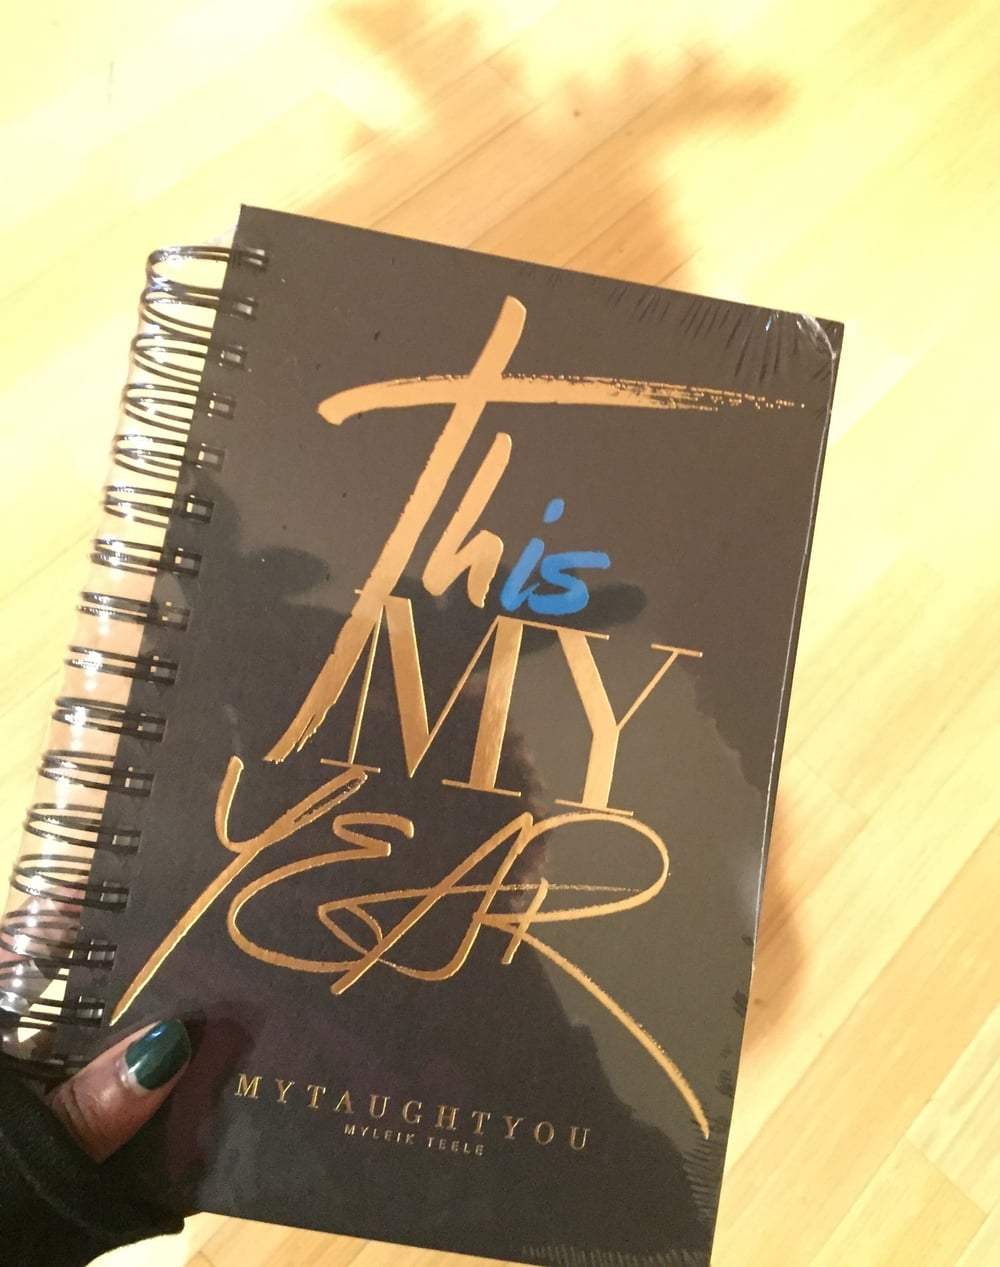 My go to journal .. You can purchase other items to keep you on track at mytaughtyou.com